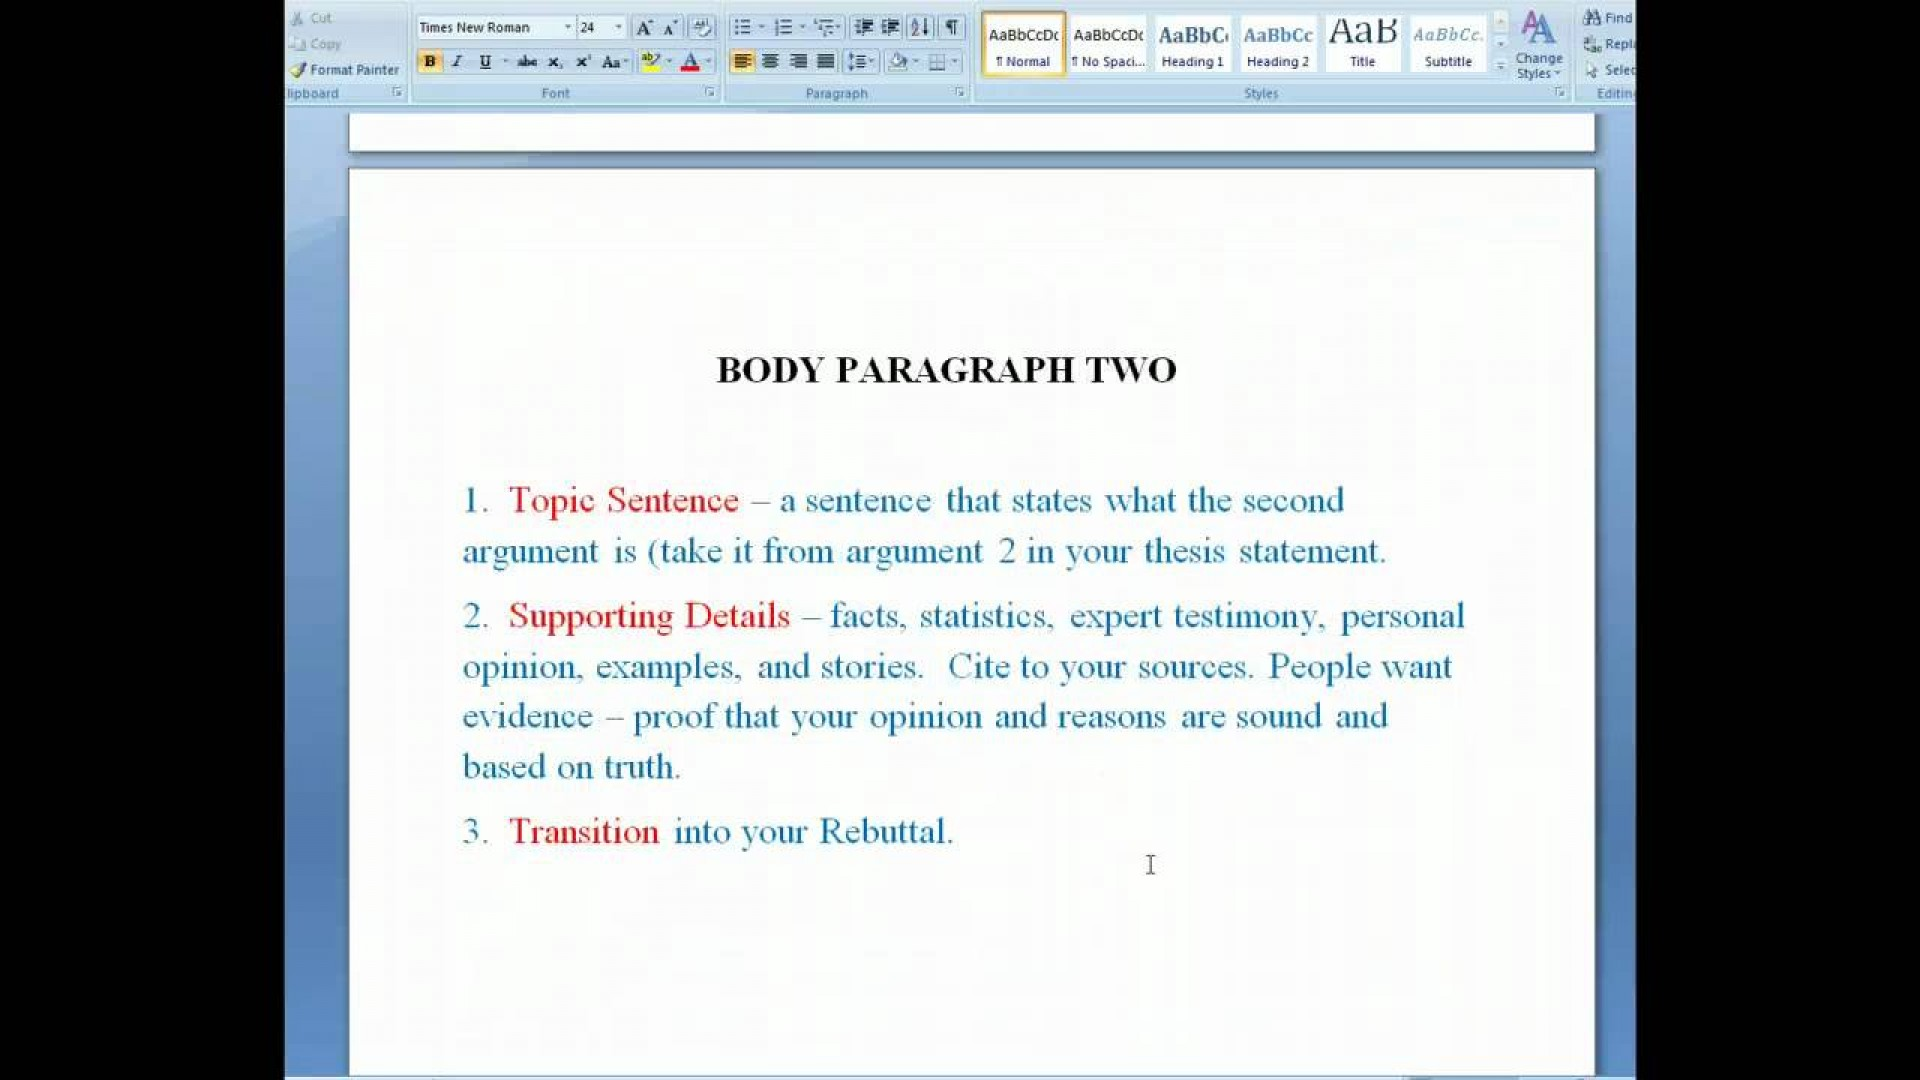 020 Argumentative Research Paper Dreaded Topics College Students Rubric Sample Pdf 1920